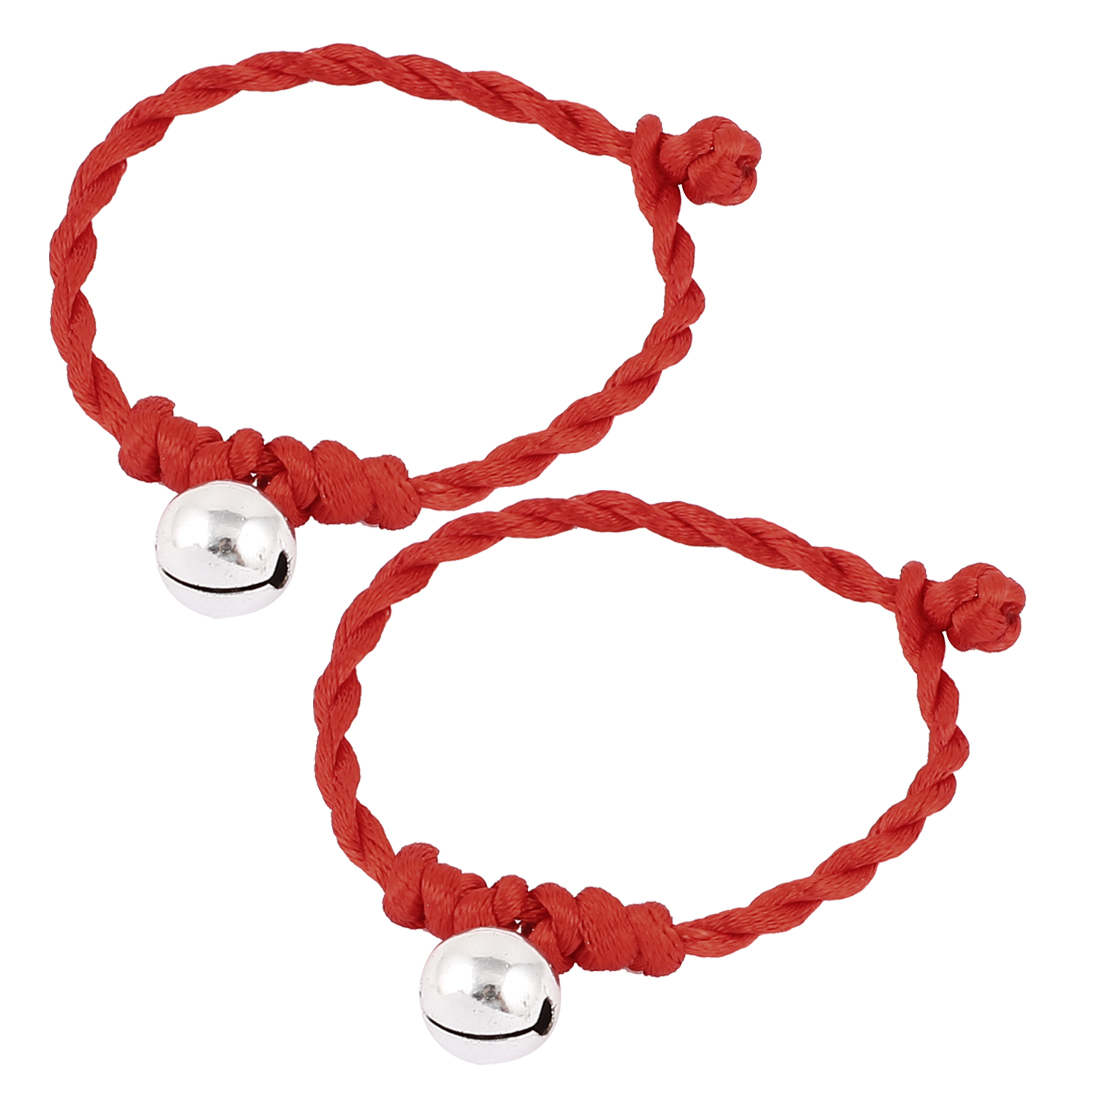 Bell Decor Red Nylon Button Knot Closure Bracelets 2 Pcs